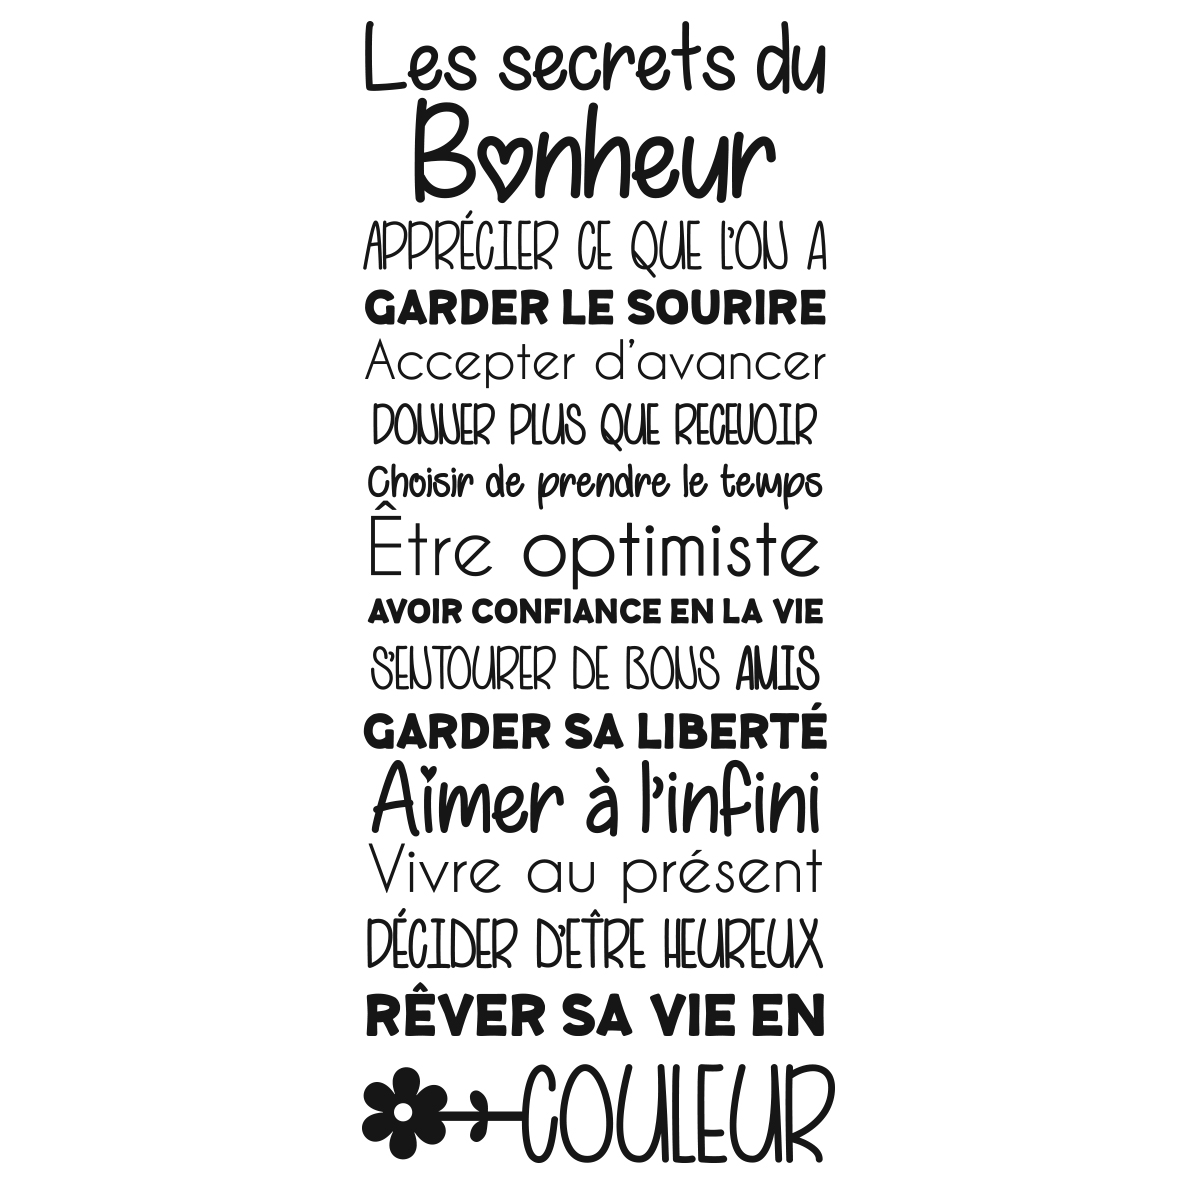 sticker citation les secrets du bonheur stickers citations fran ais ambiance sticker. Black Bedroom Furniture Sets. Home Design Ideas